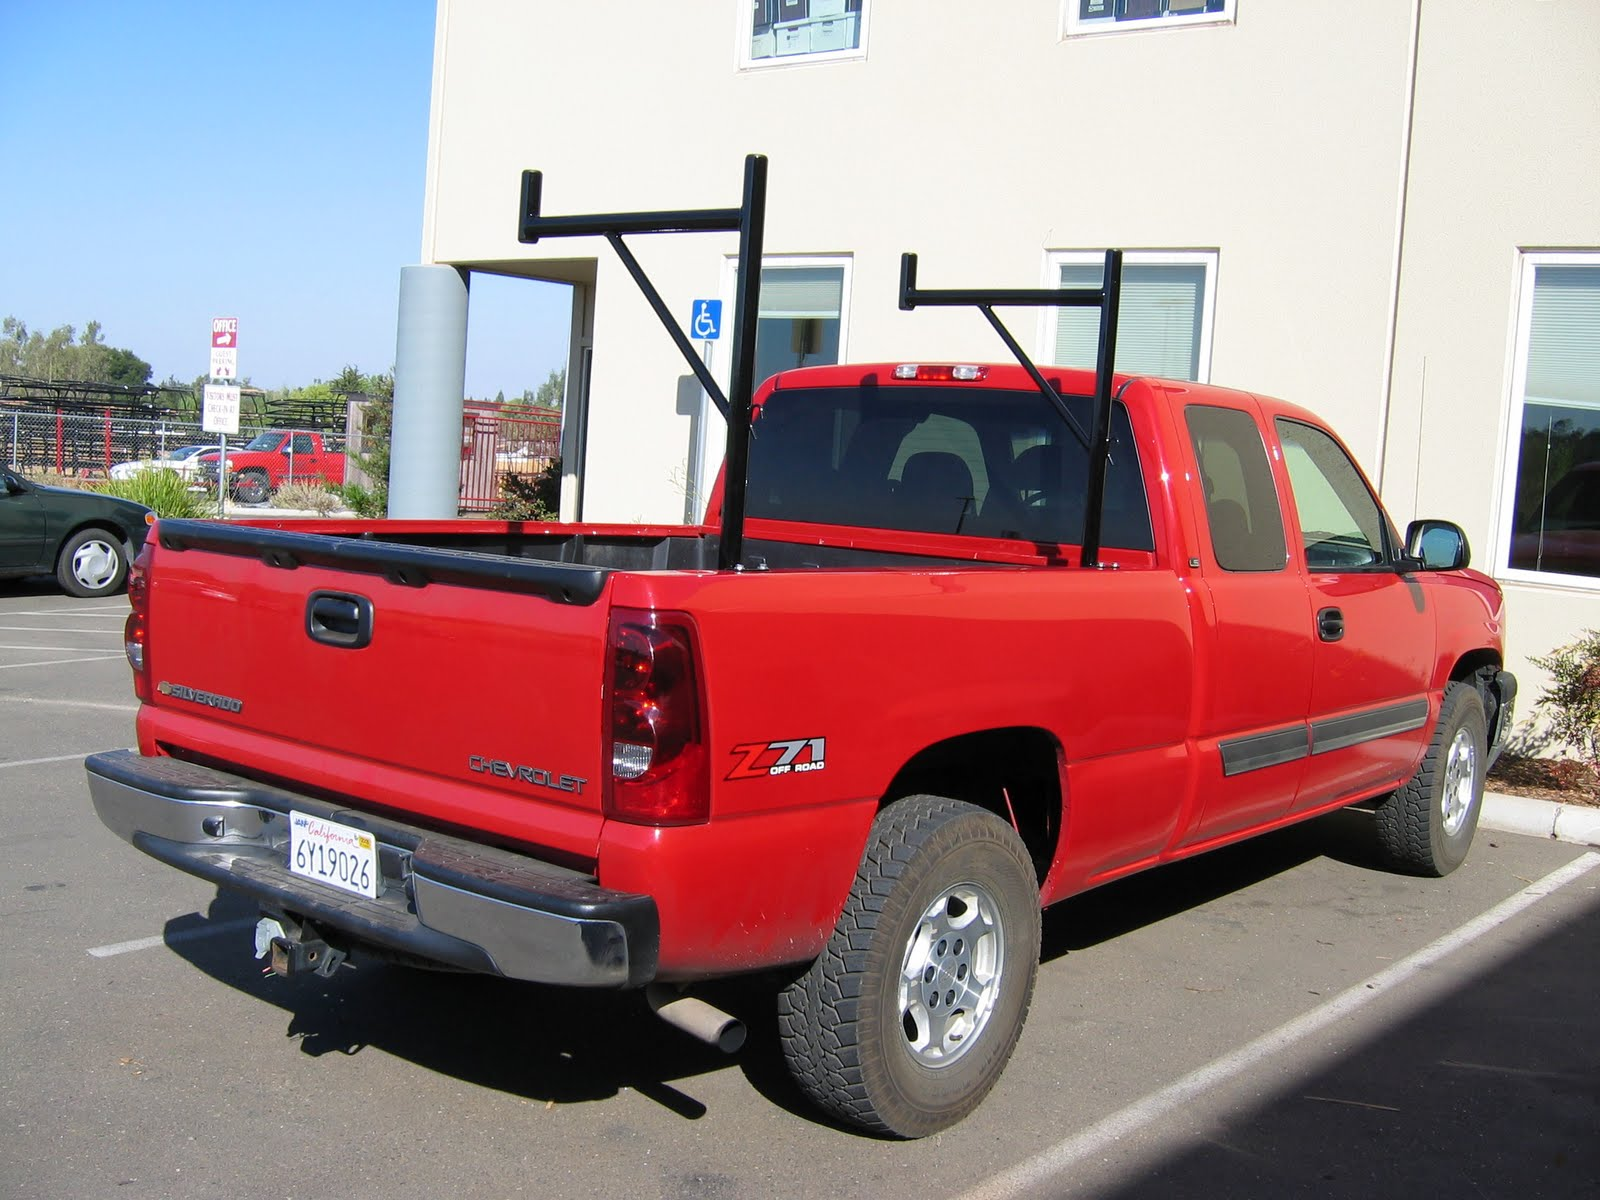 Rack-it Truck Racks: The Ladder Pro Rack